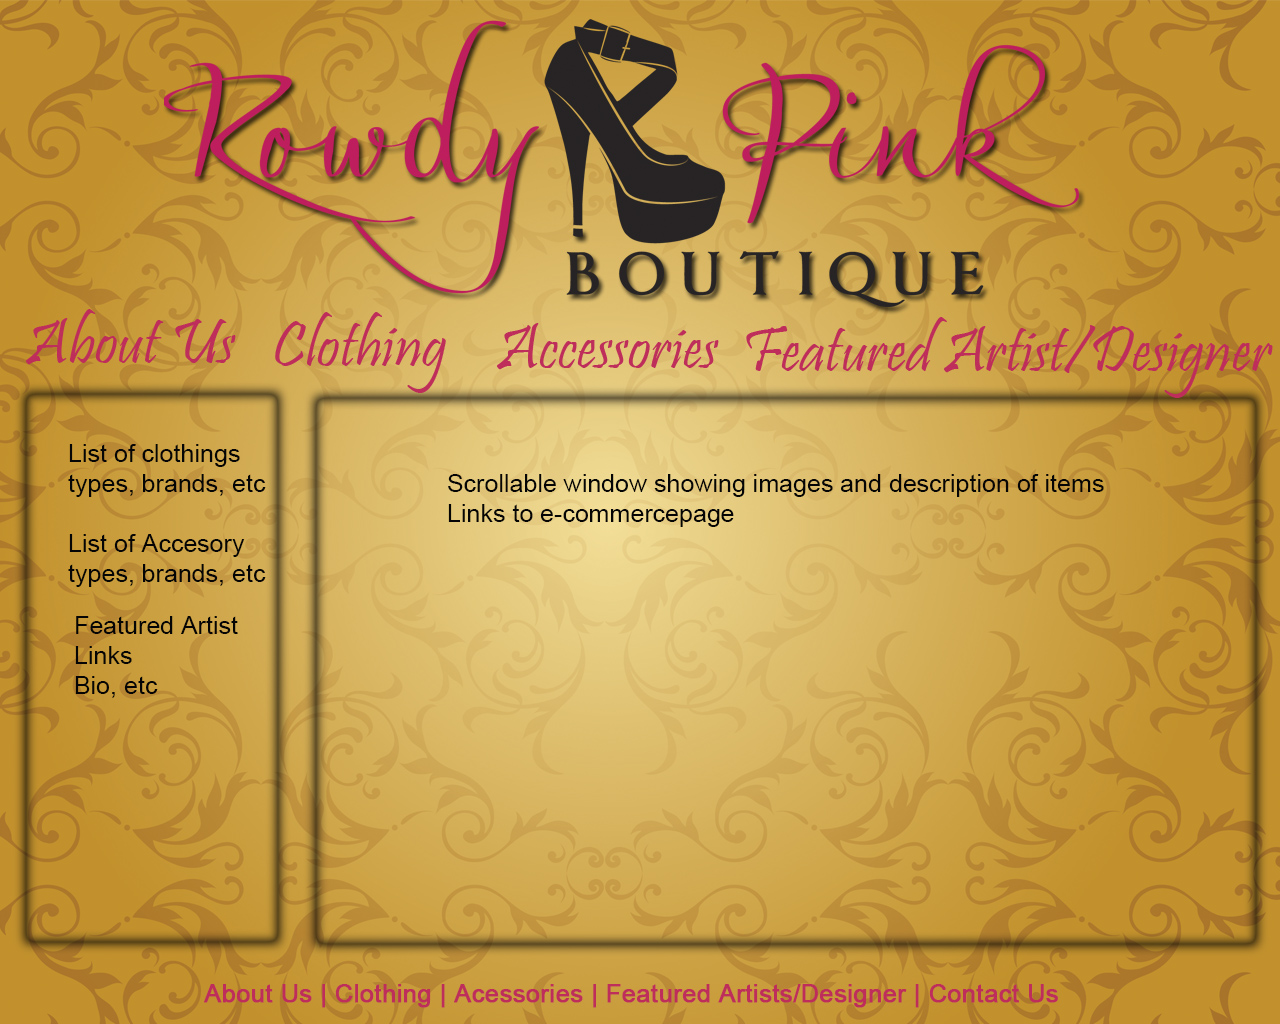 Rowdy Pink Boutique